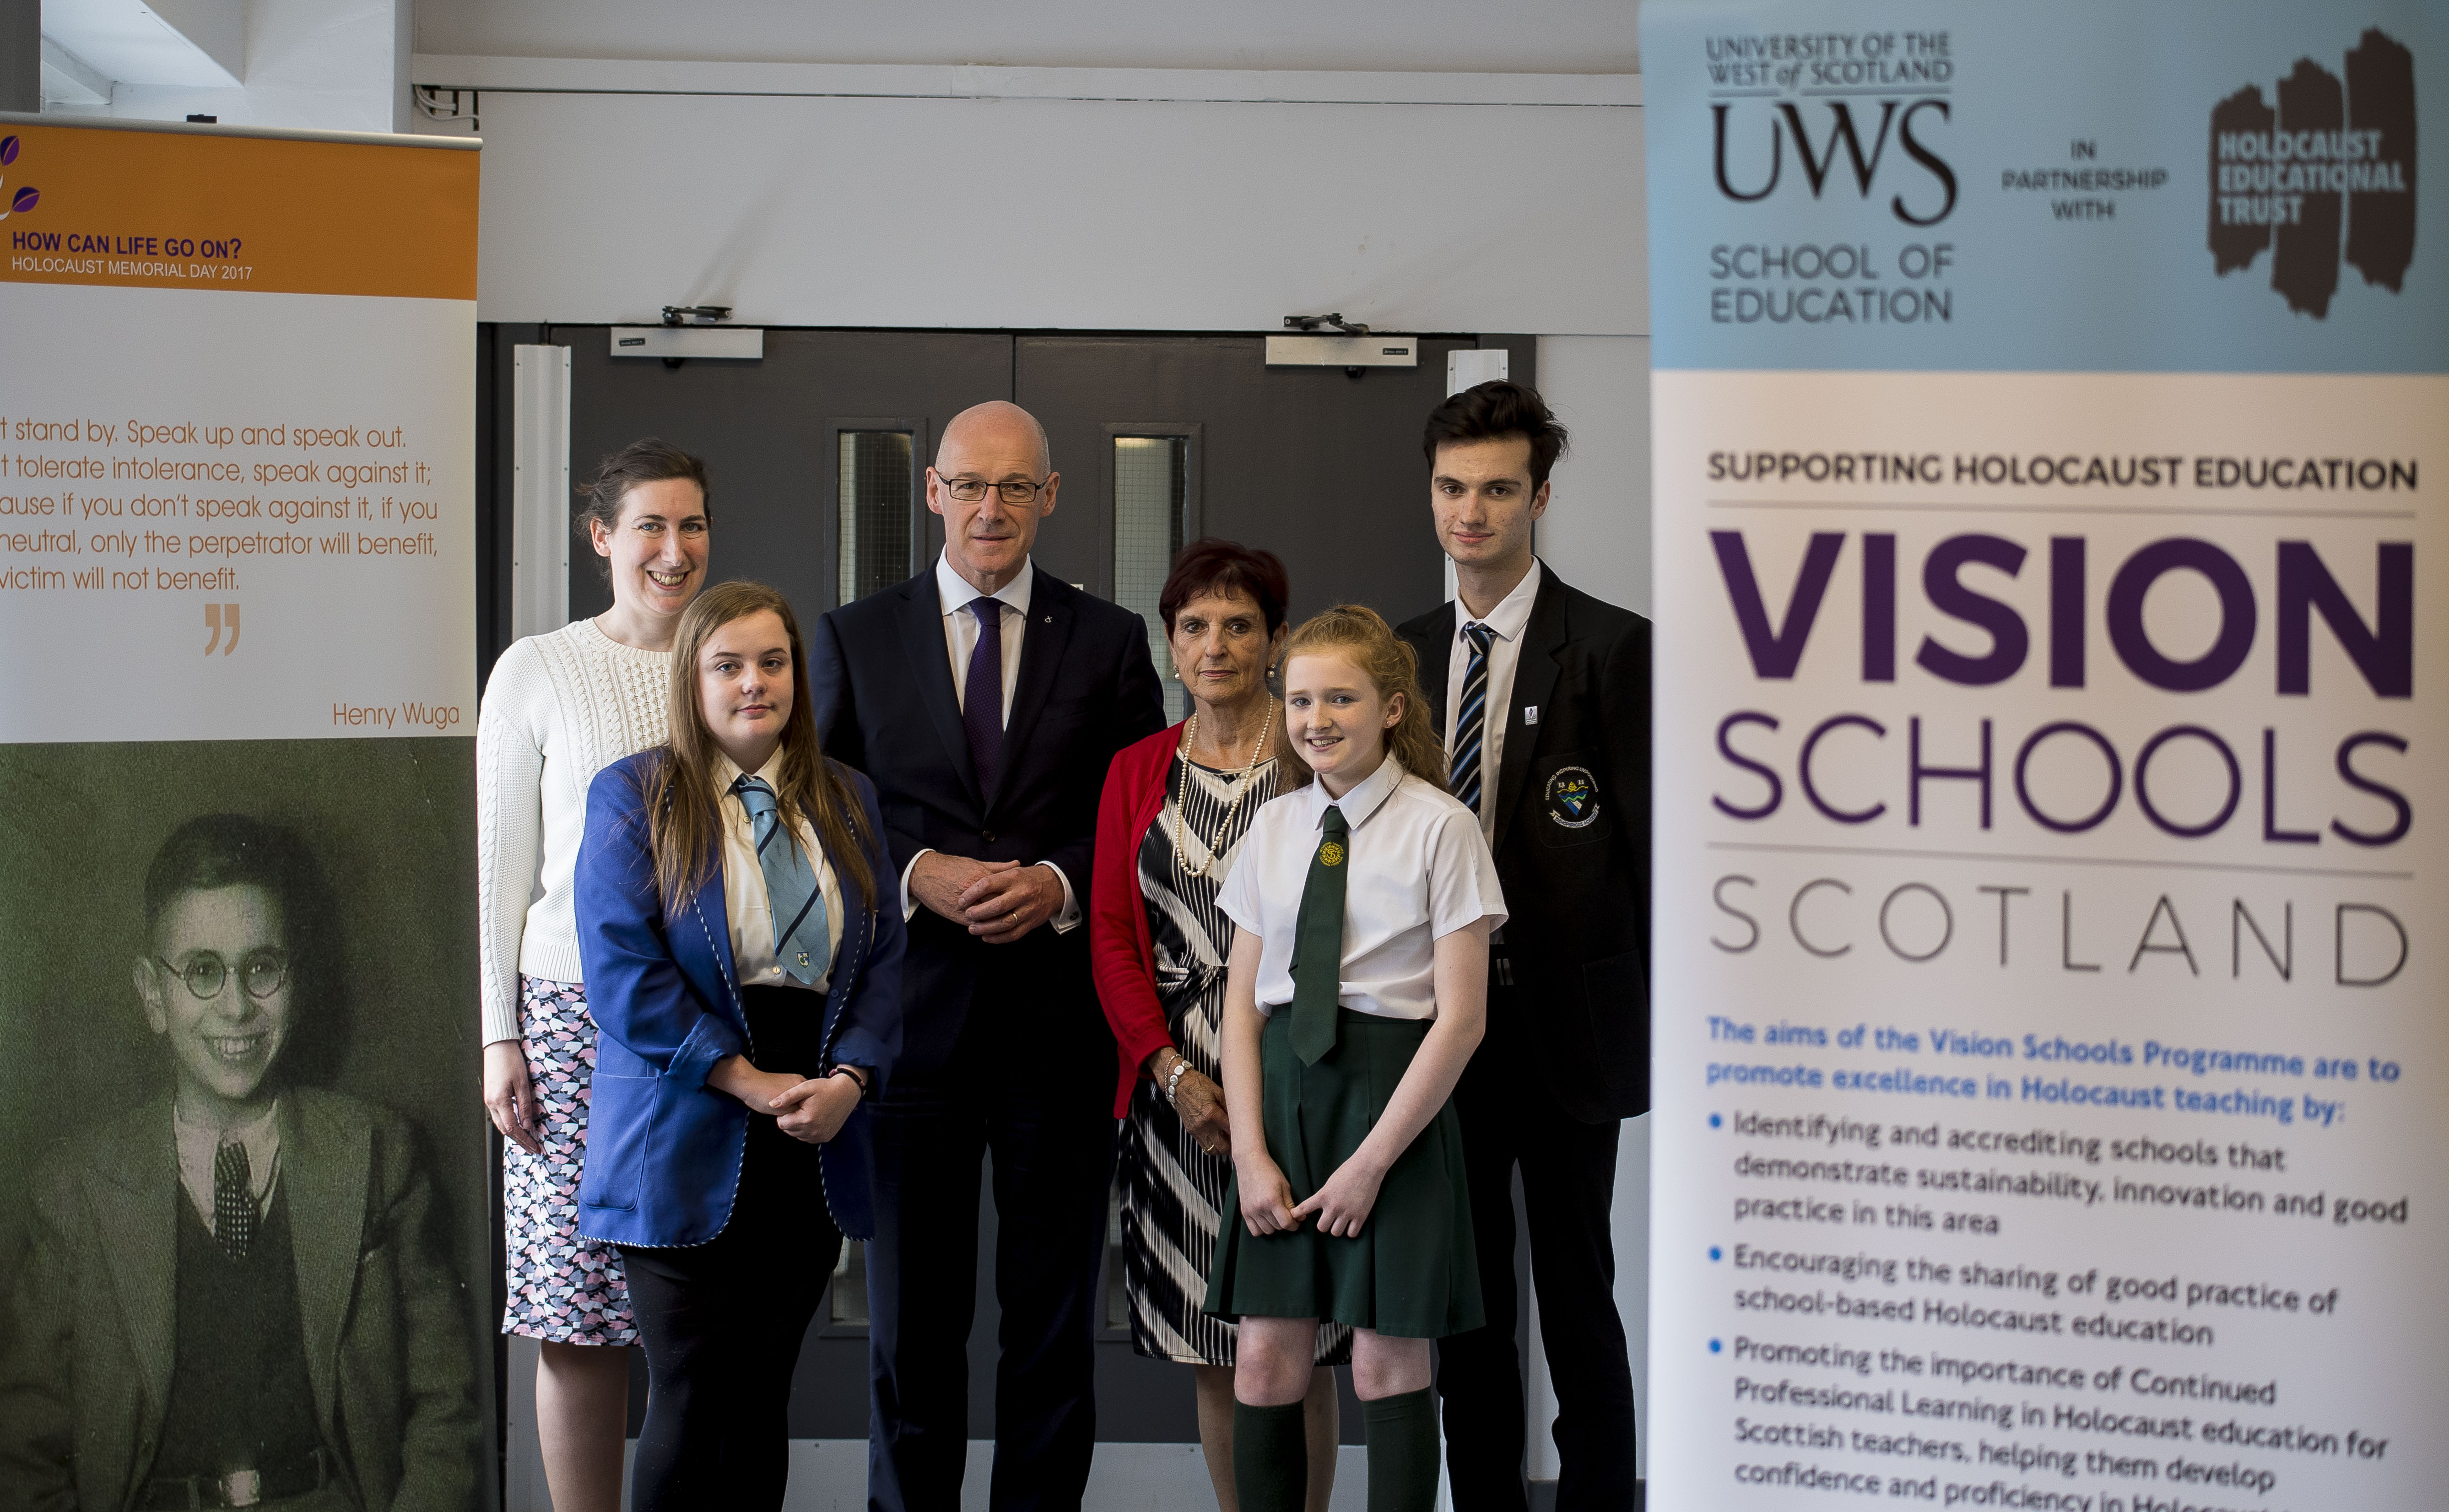 Grove Academy Pioneers Commitment to Holocaust Education in Scotland